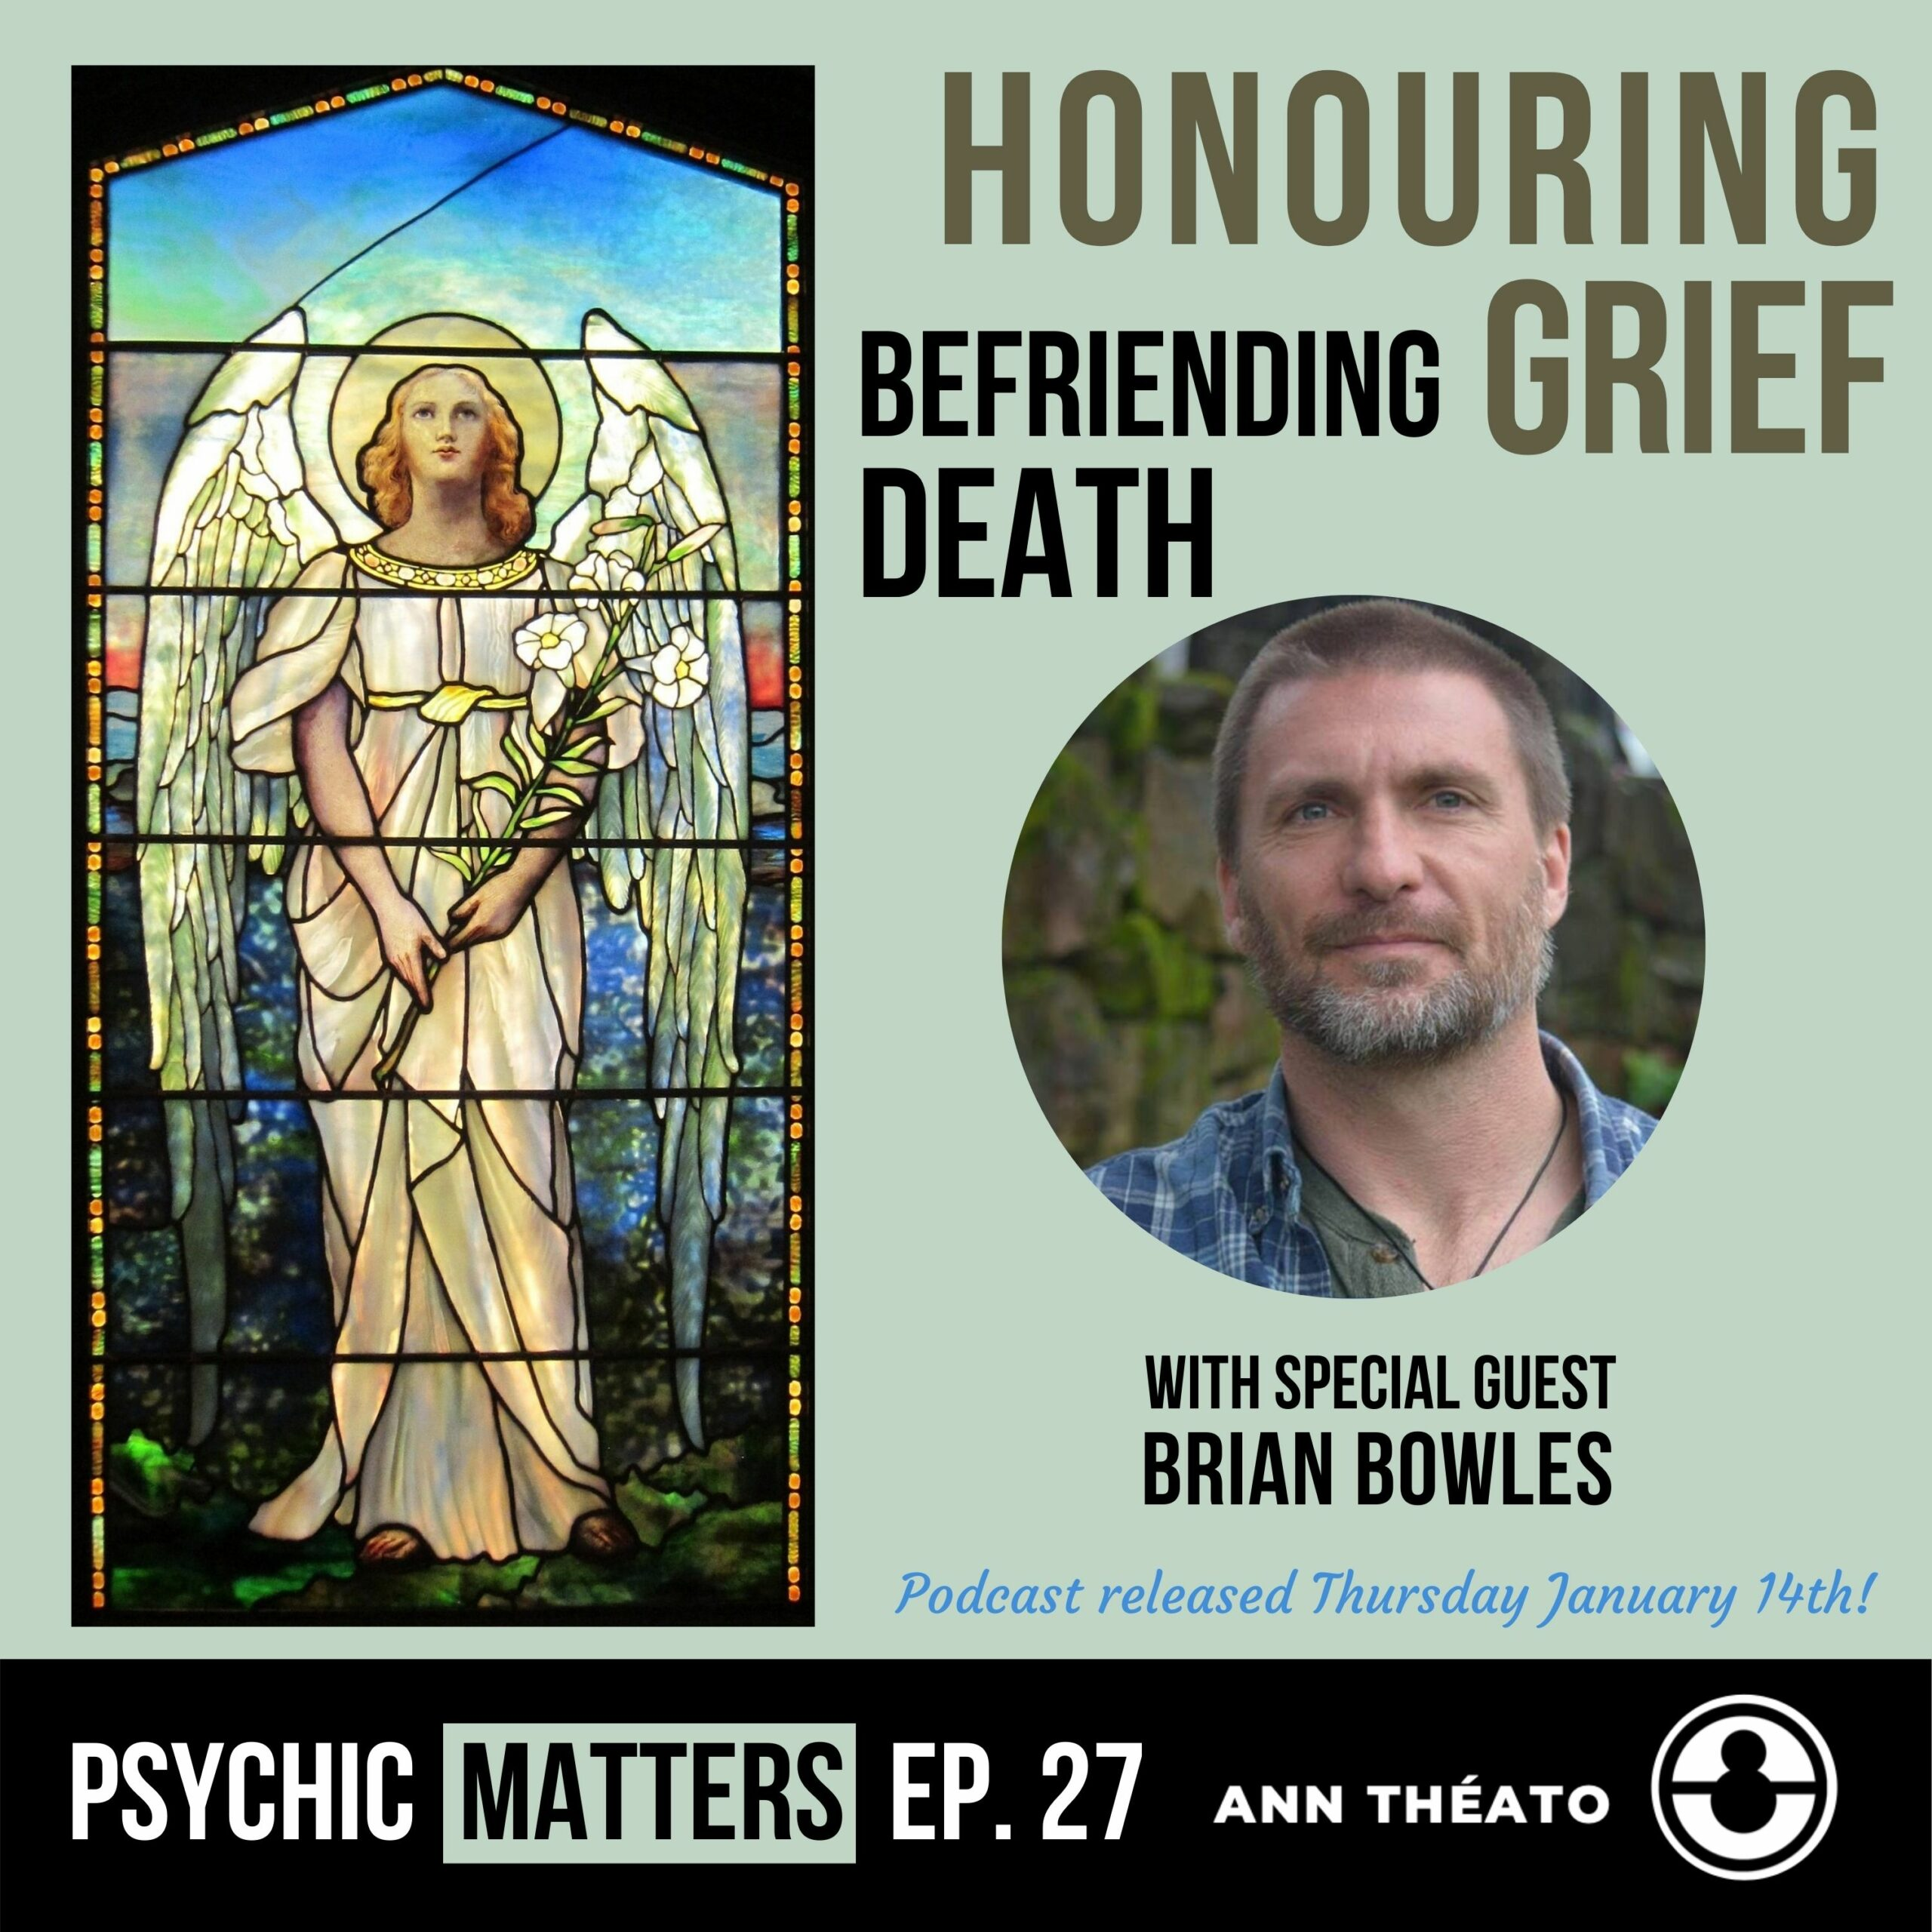 Episode 27 - Honouring Grief, Befriending Death